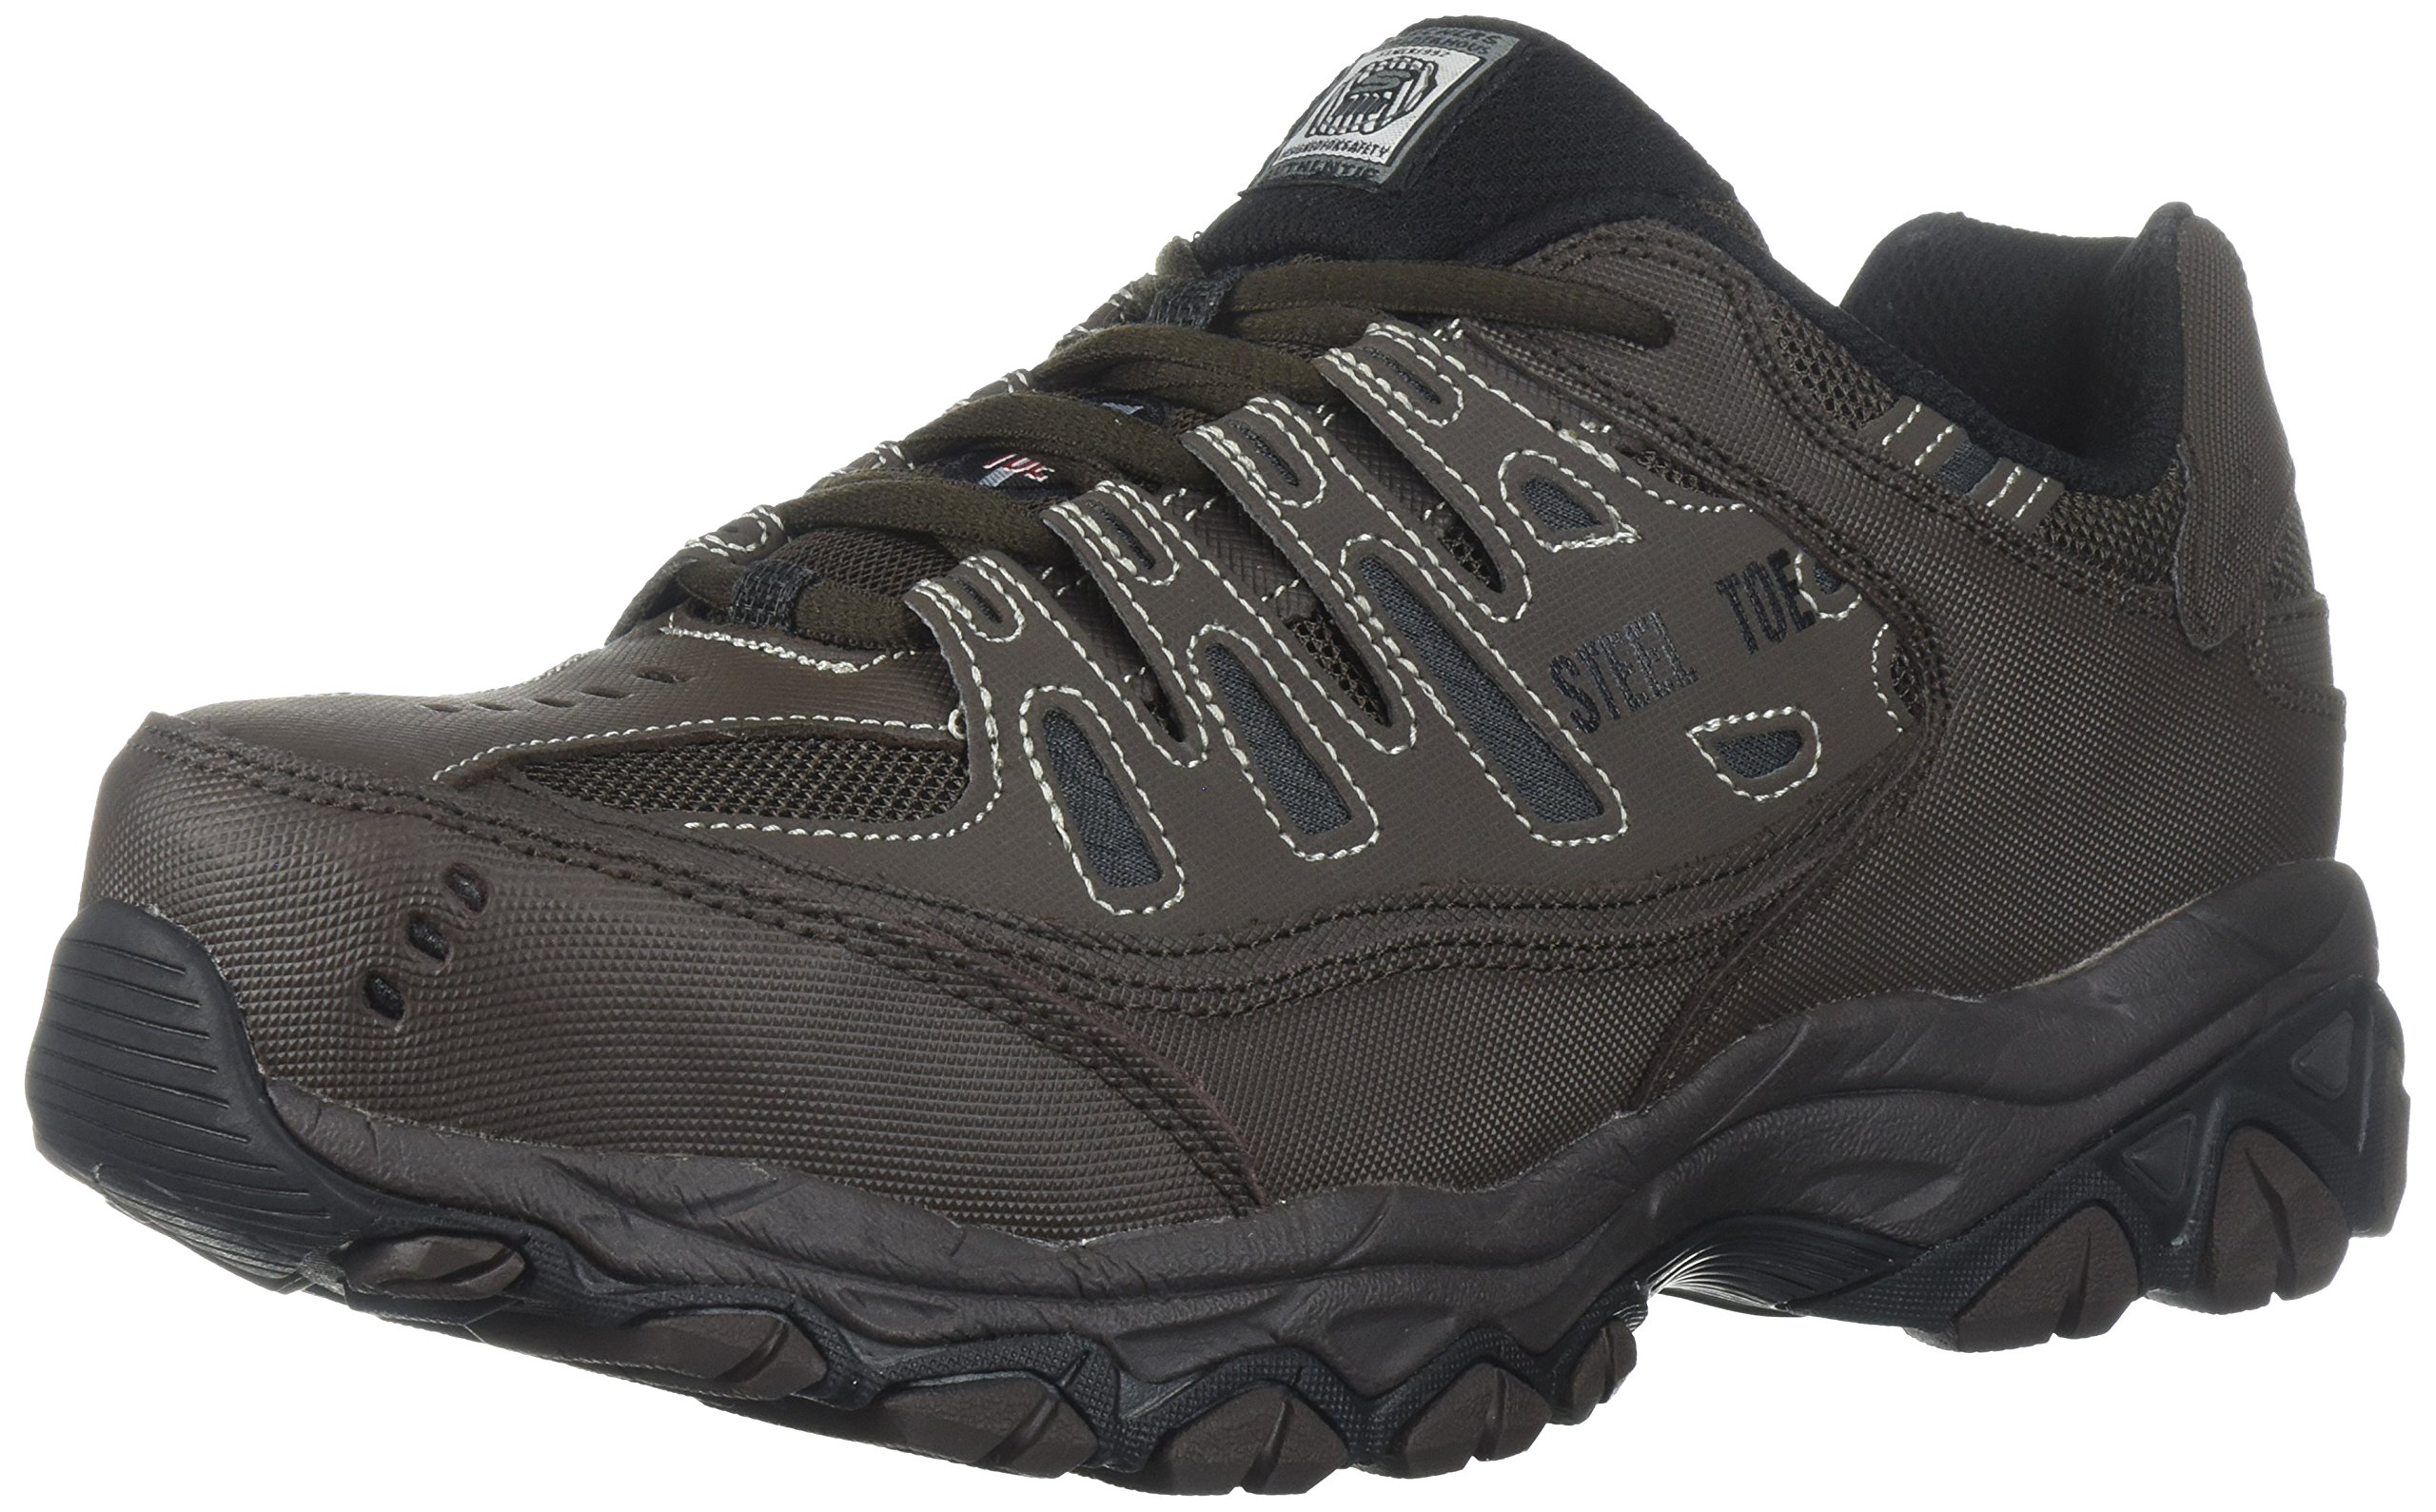 Skechers for Work Men's Cankton-U Industrial Shoe,Brown,9 2E US